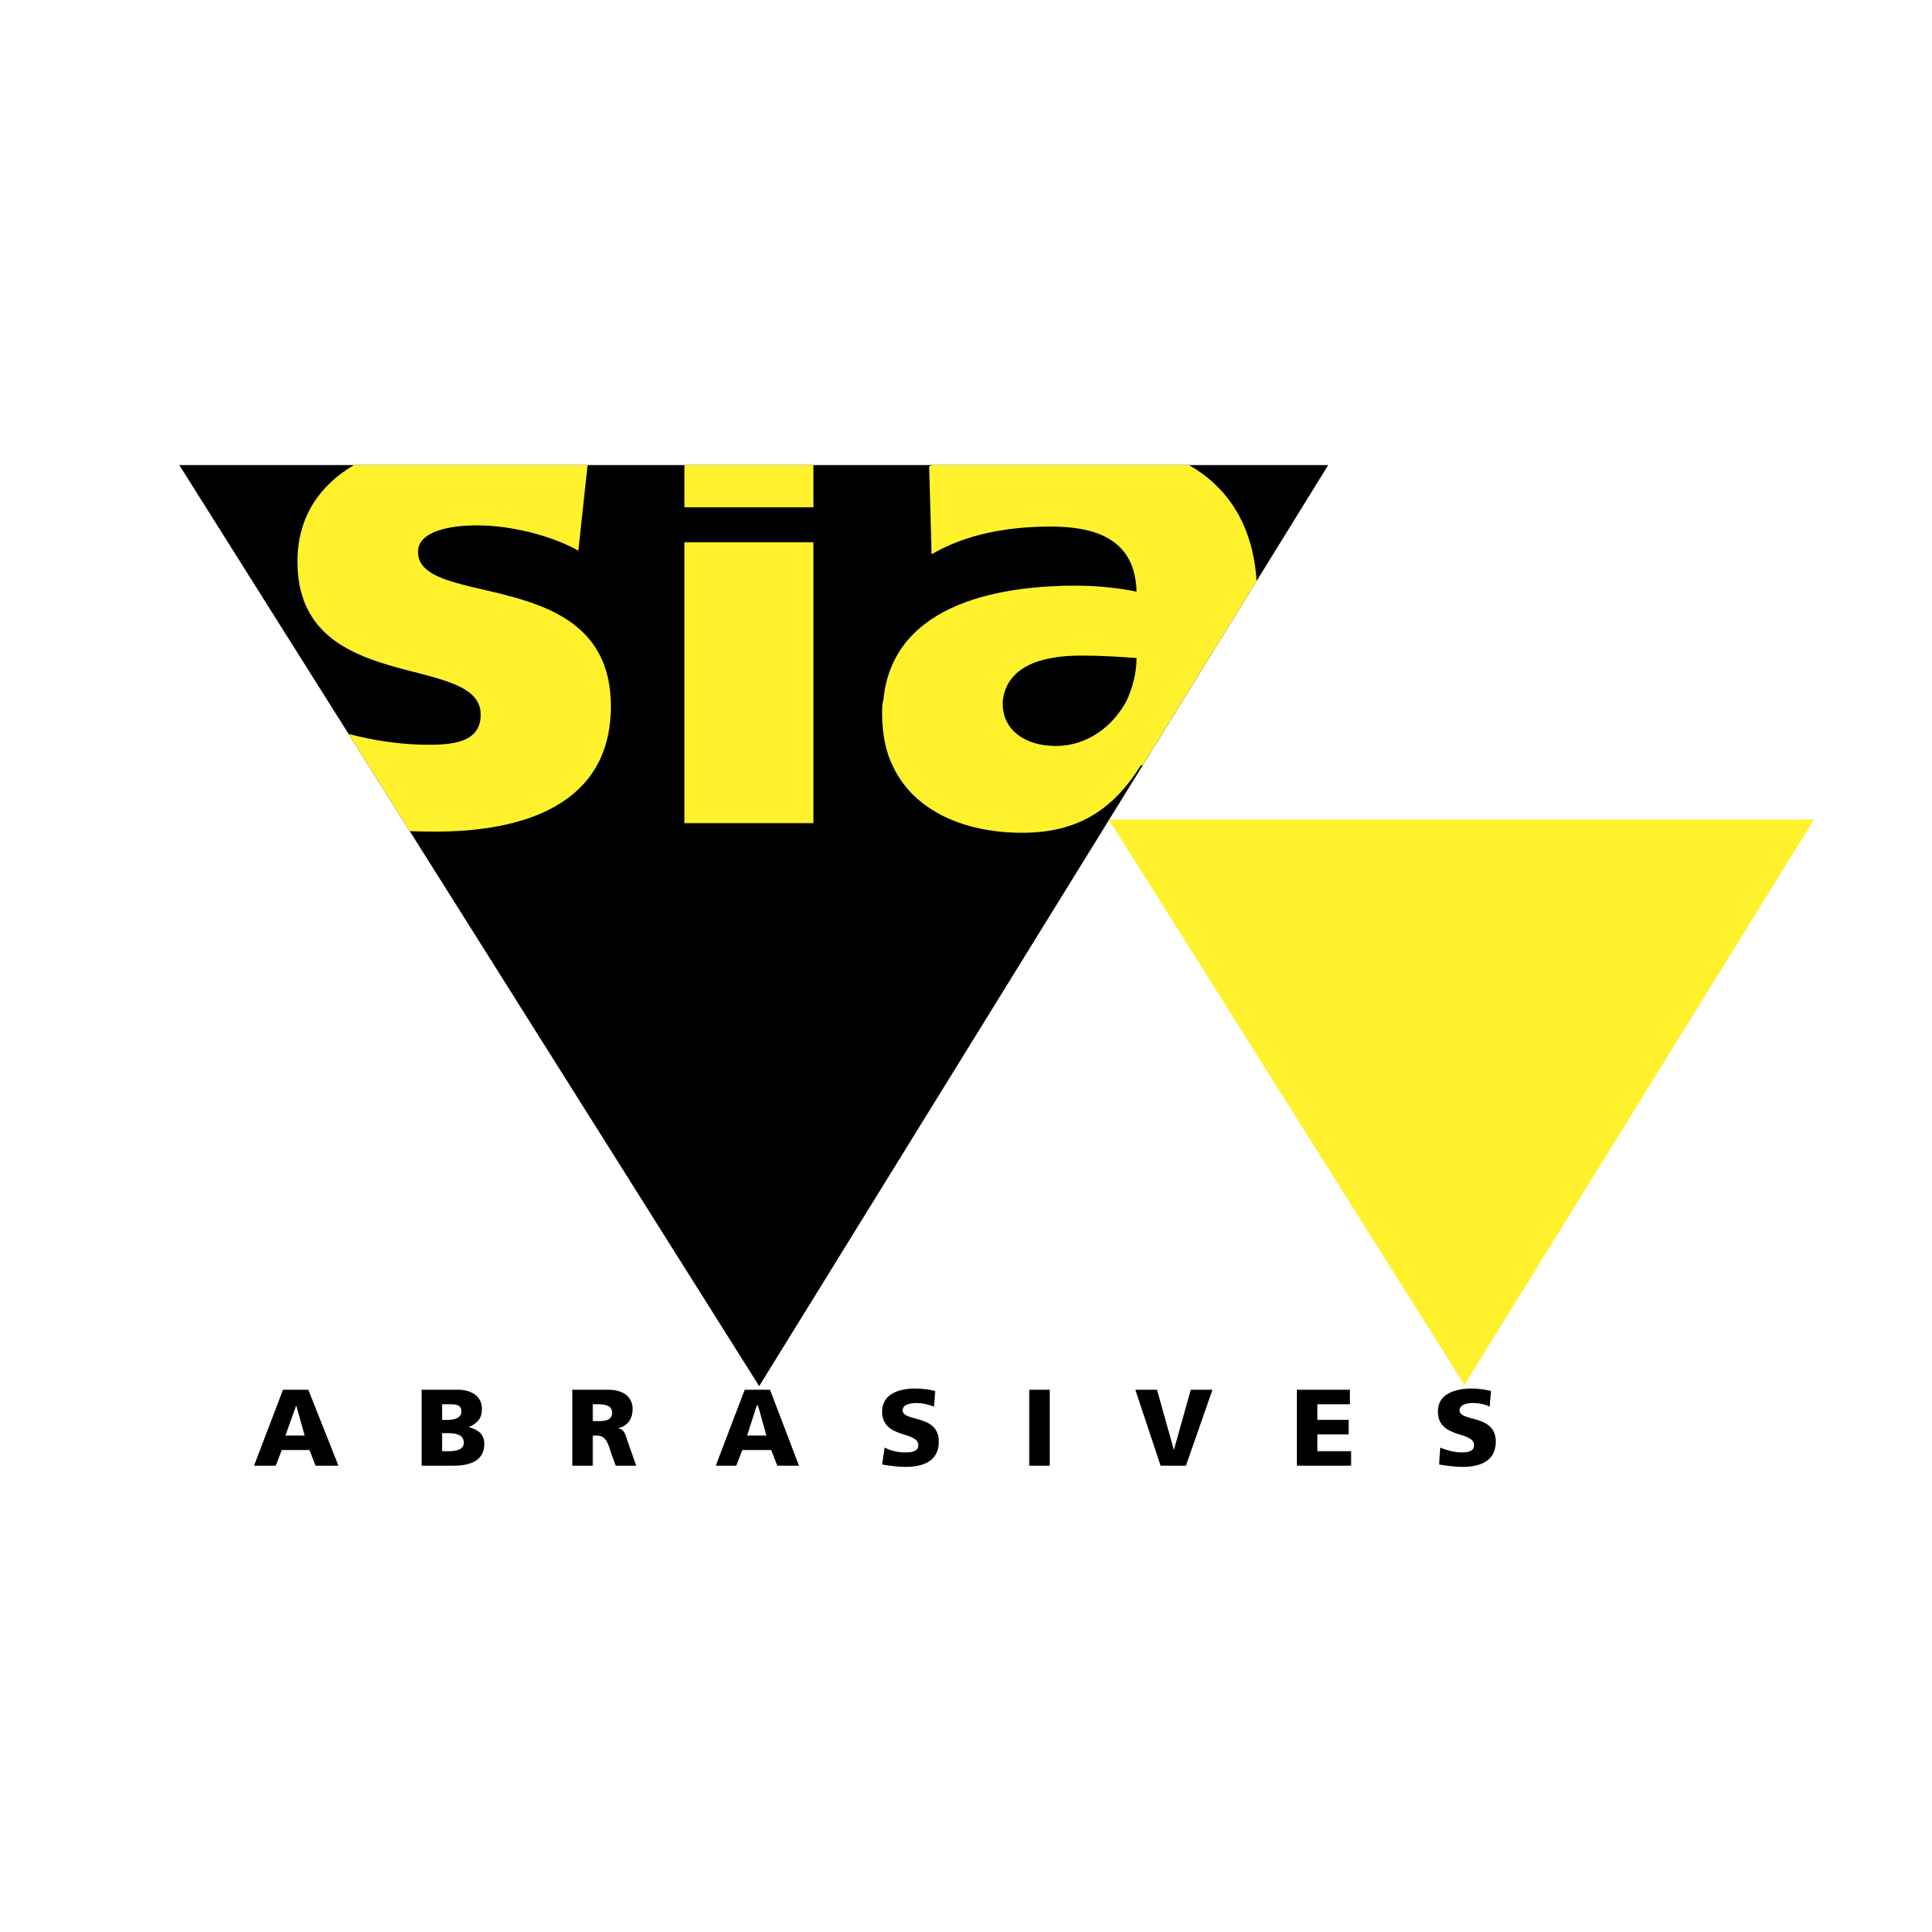 sia-abrasives-logo-png-transparent